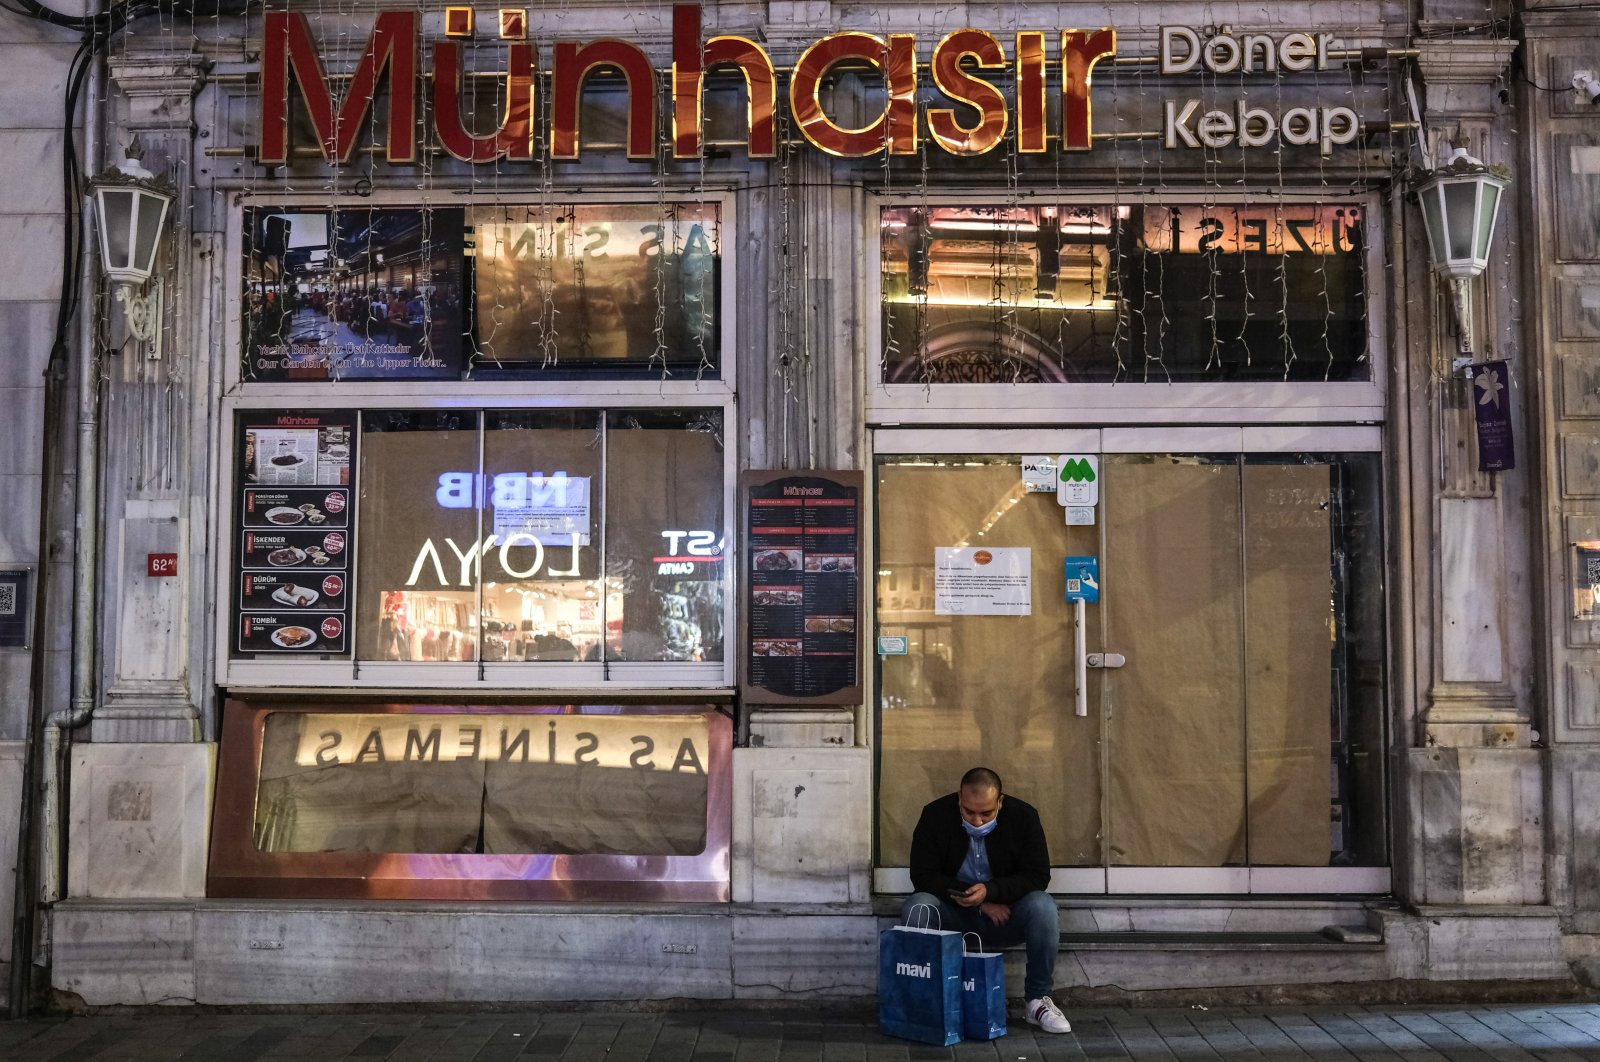 A man wearing a mask sits in front of the closed Turkish Kebap-Döner restaurant on Istiklal Avenue in Istanbul, Turkey, Jan. 22, 2021. (EPA Photo)